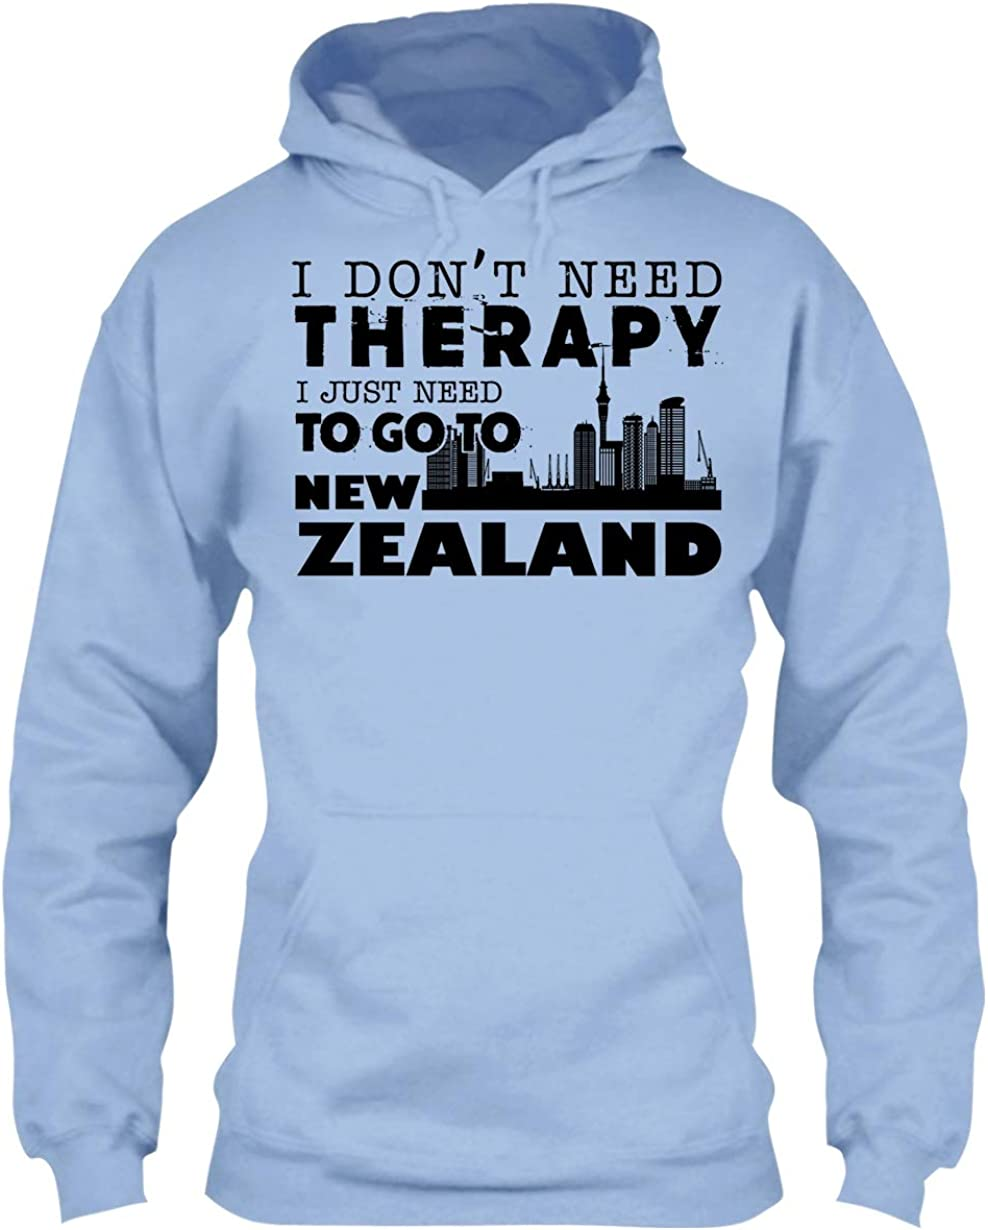 New Zealand Beautiful Tee Shirt I Dont Need Therapy I Just Need To Go New Zealand T-Shirt Best Gift For Friend.